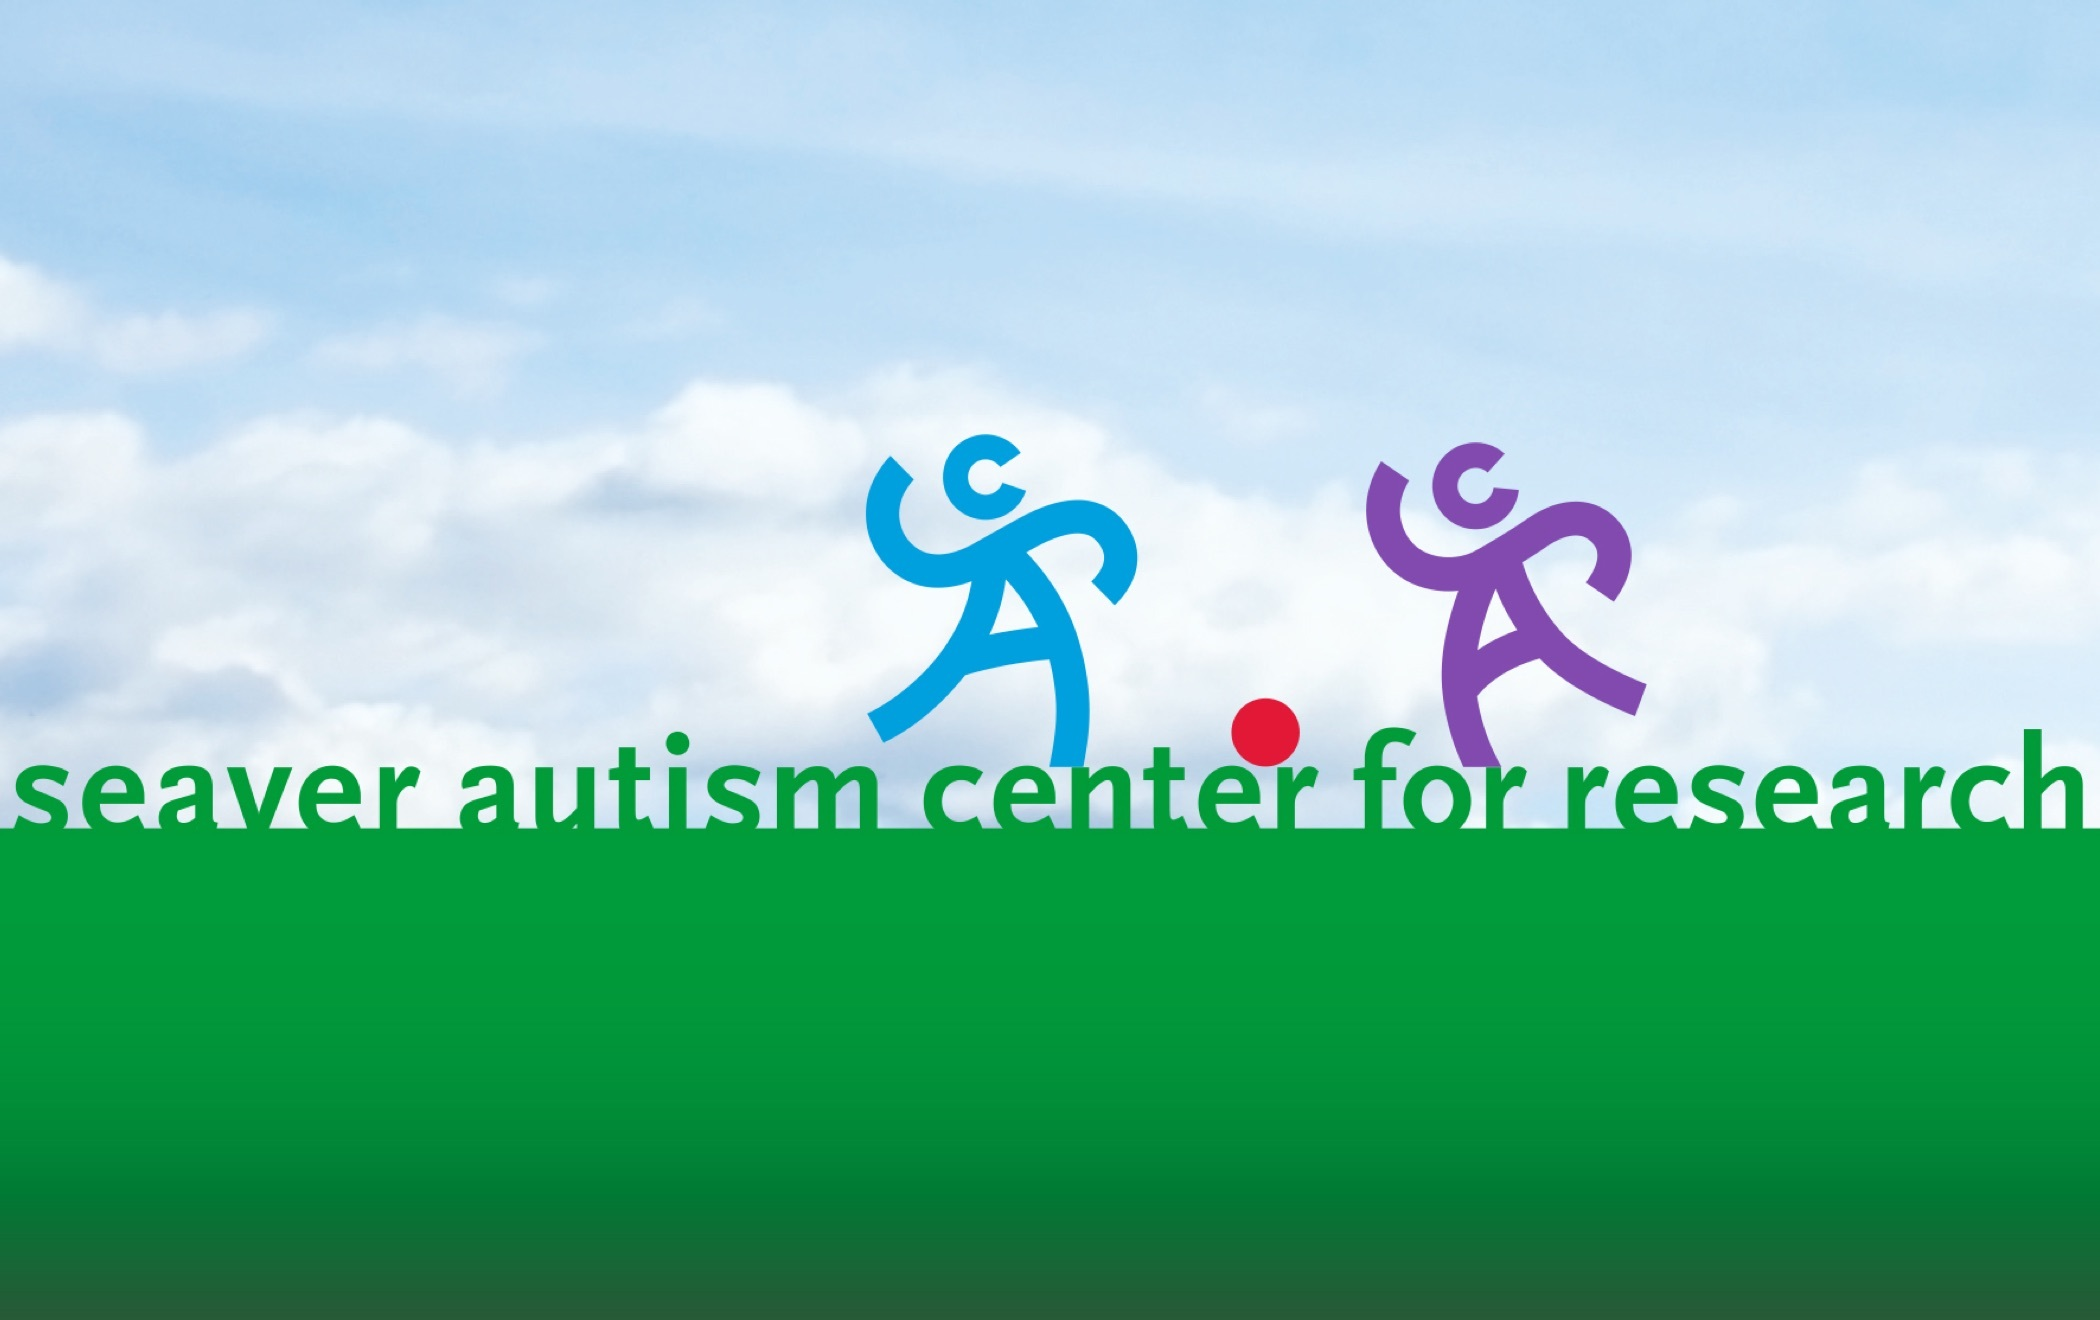 The Mount Sinai Seaver Autism Center for Research logo.